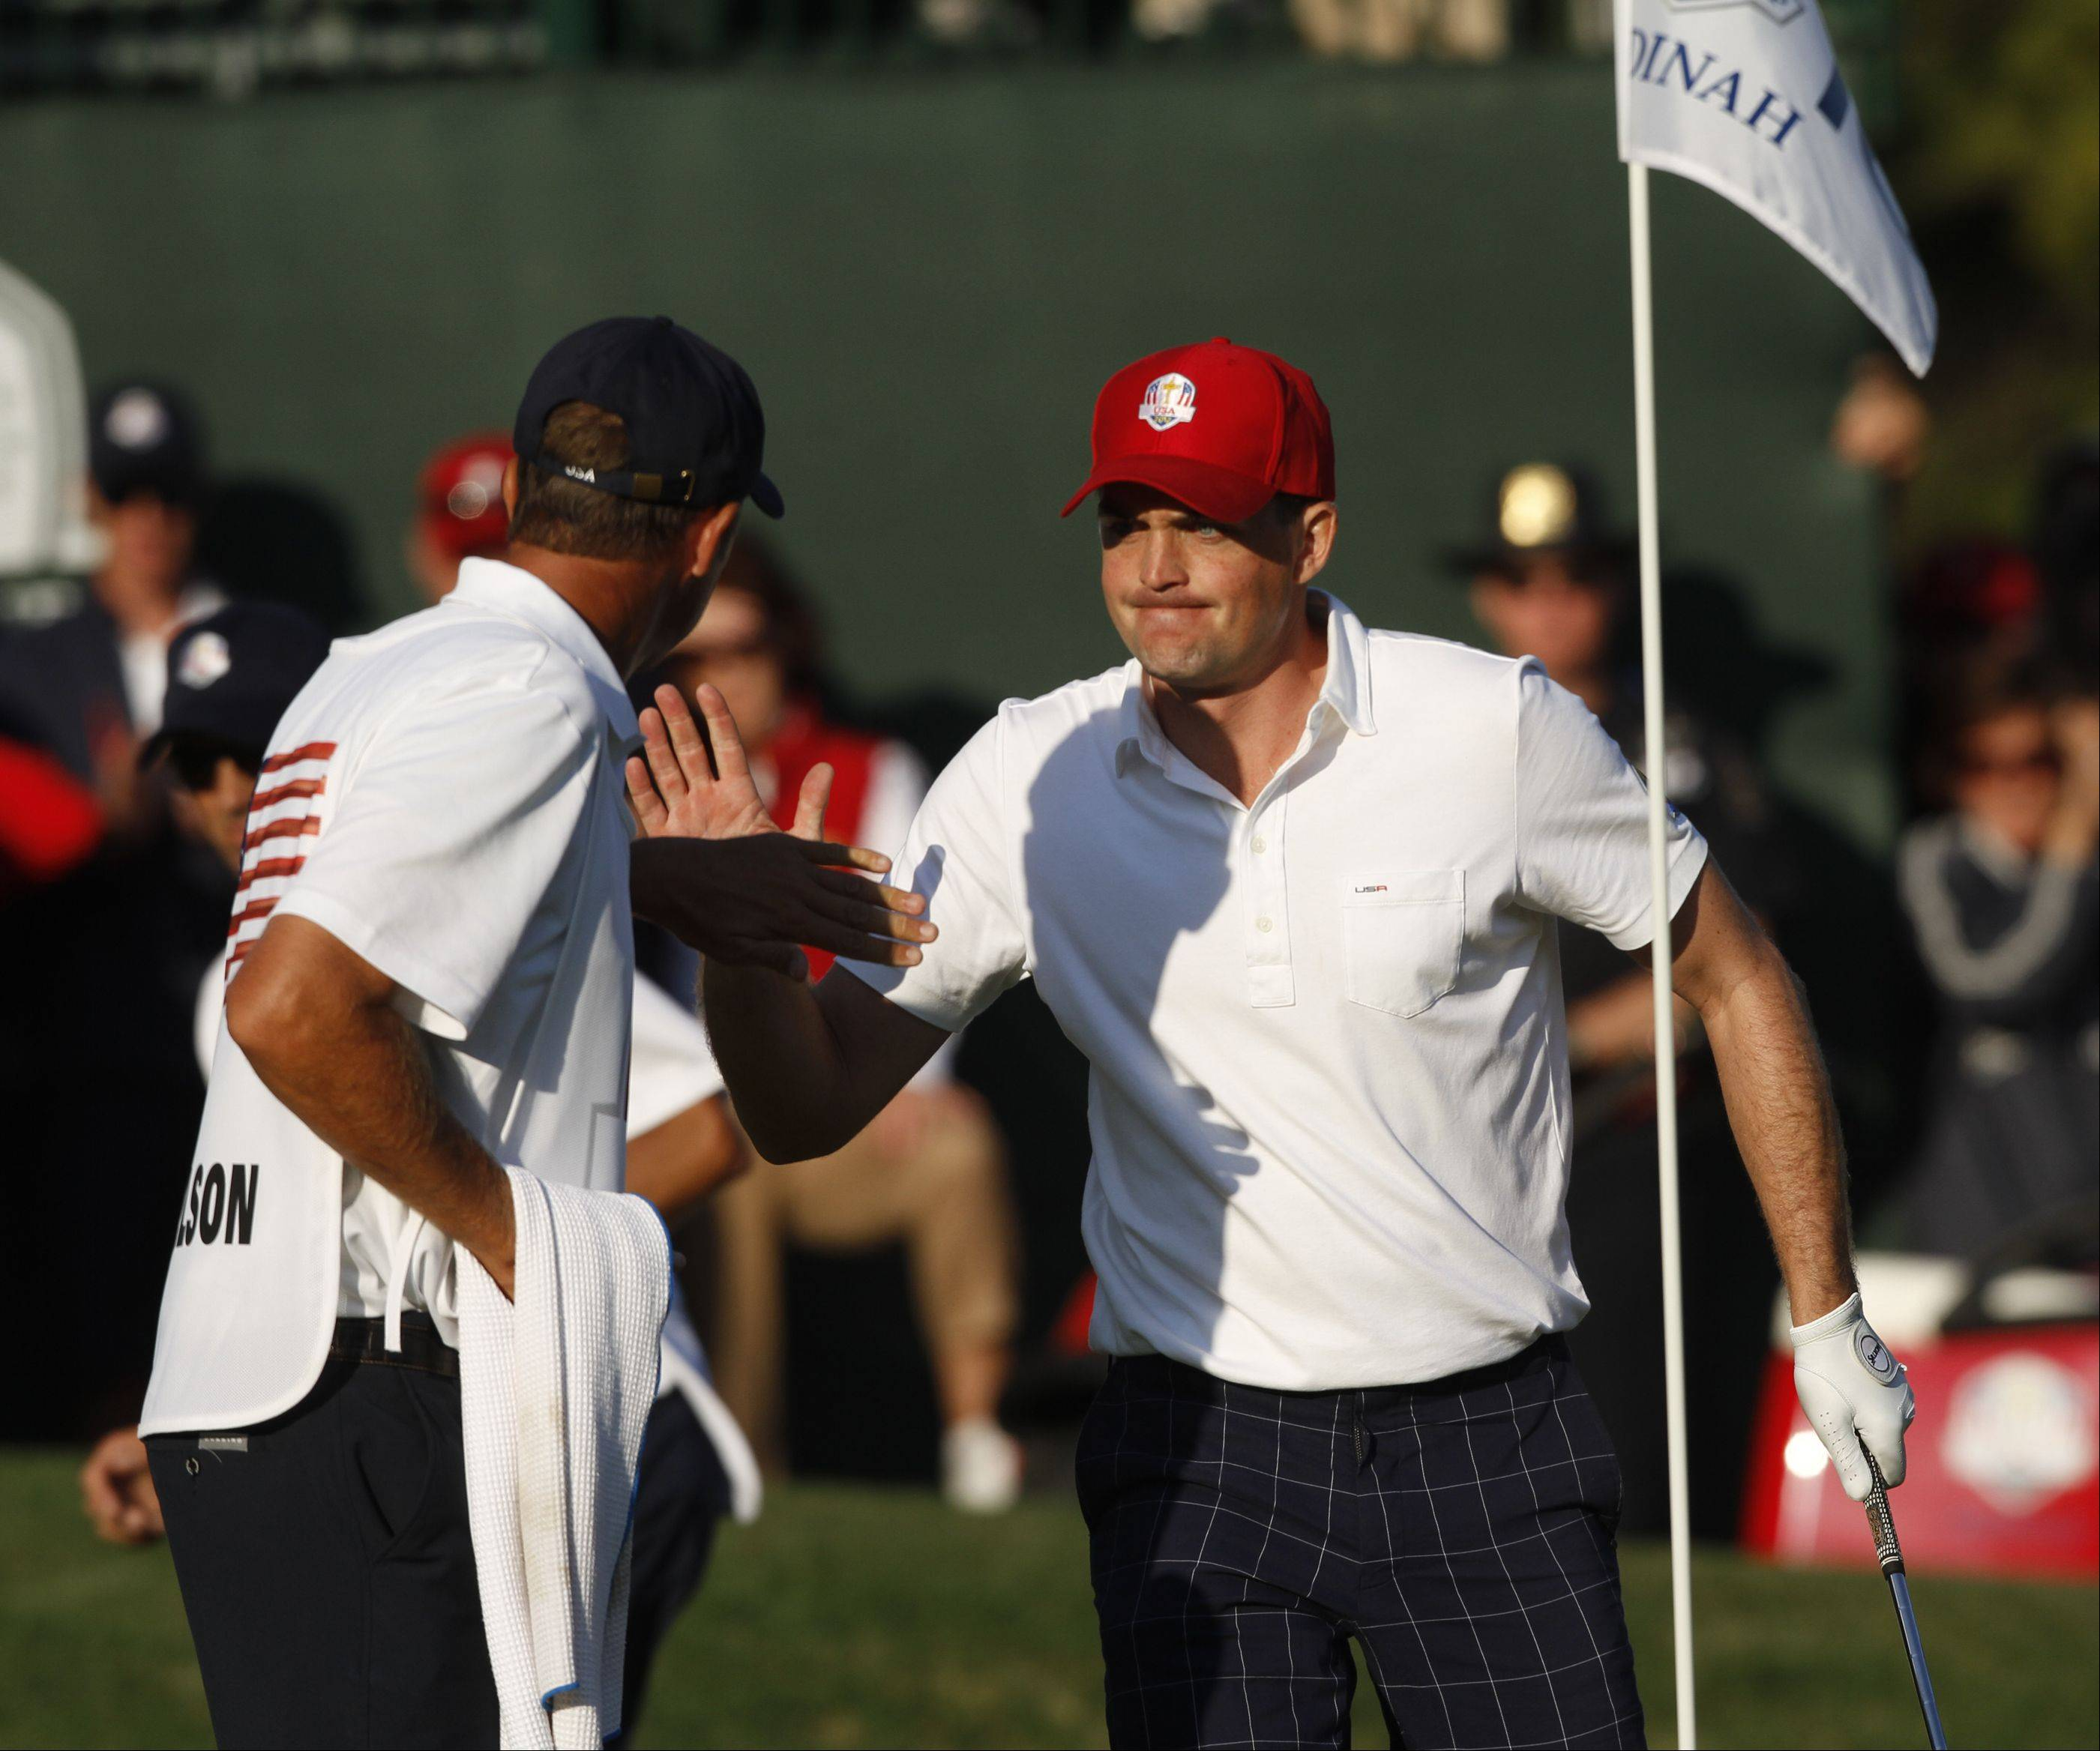 Keegan Bradley high fives his caddy after chipping close to the cup on the 16th hole Friday afternoon at the 2012 Ryder Cup at Medinah Country Club.